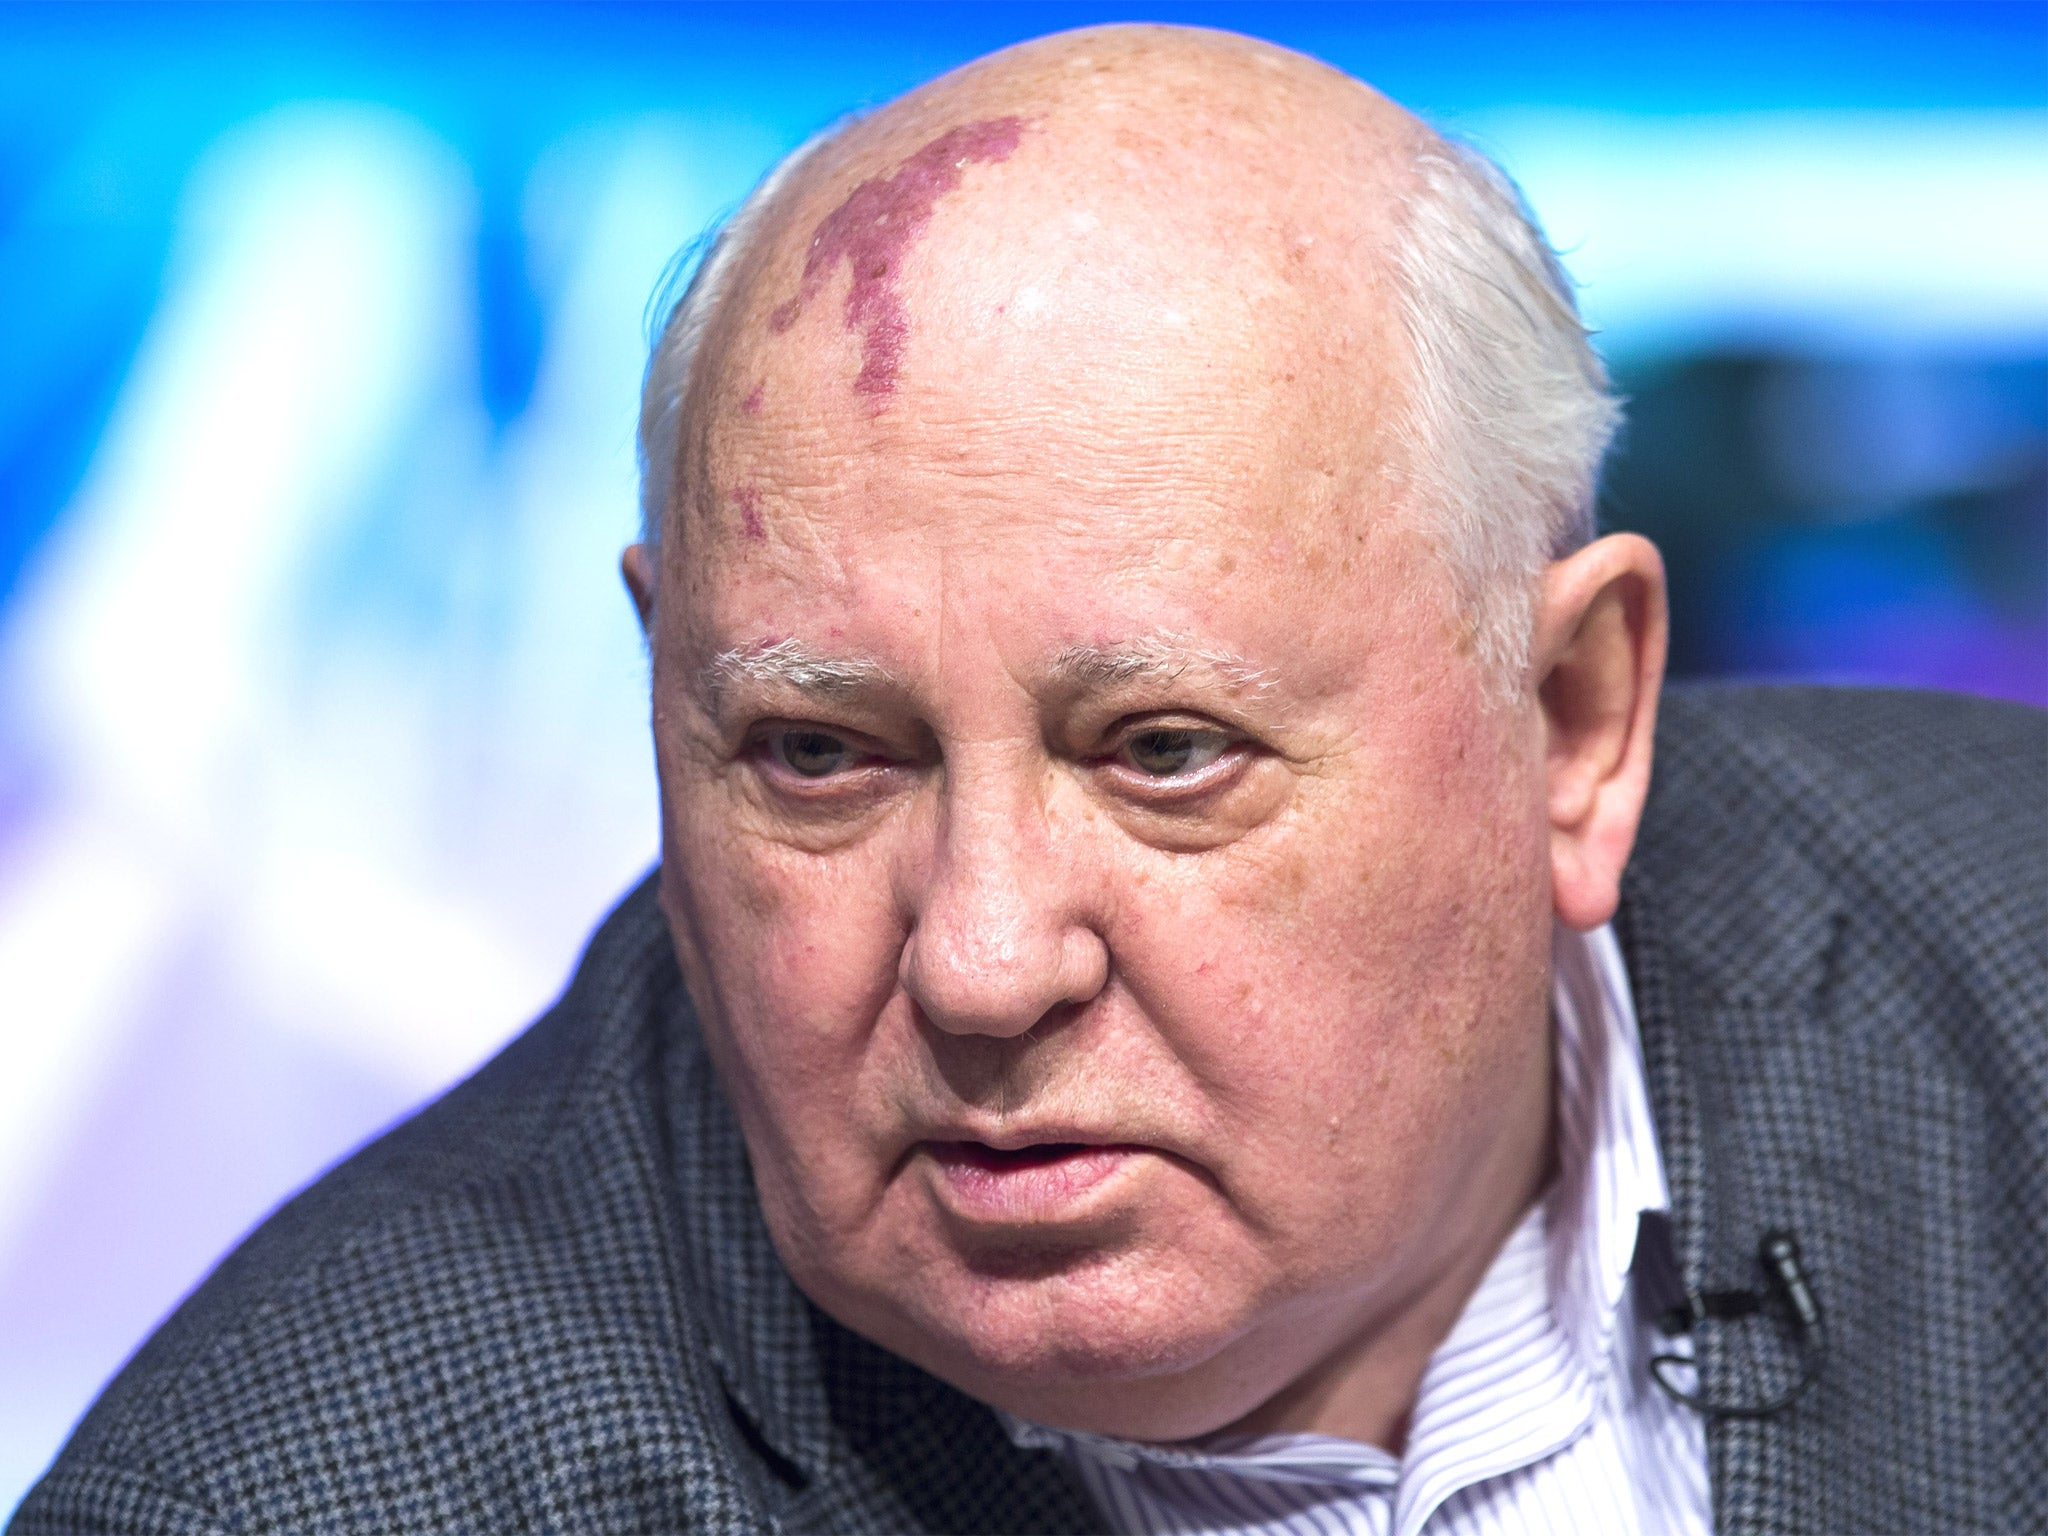 Mikhail Gorbachev admitted that he was responsible for the collapse of the USSR 04/25/2016 72